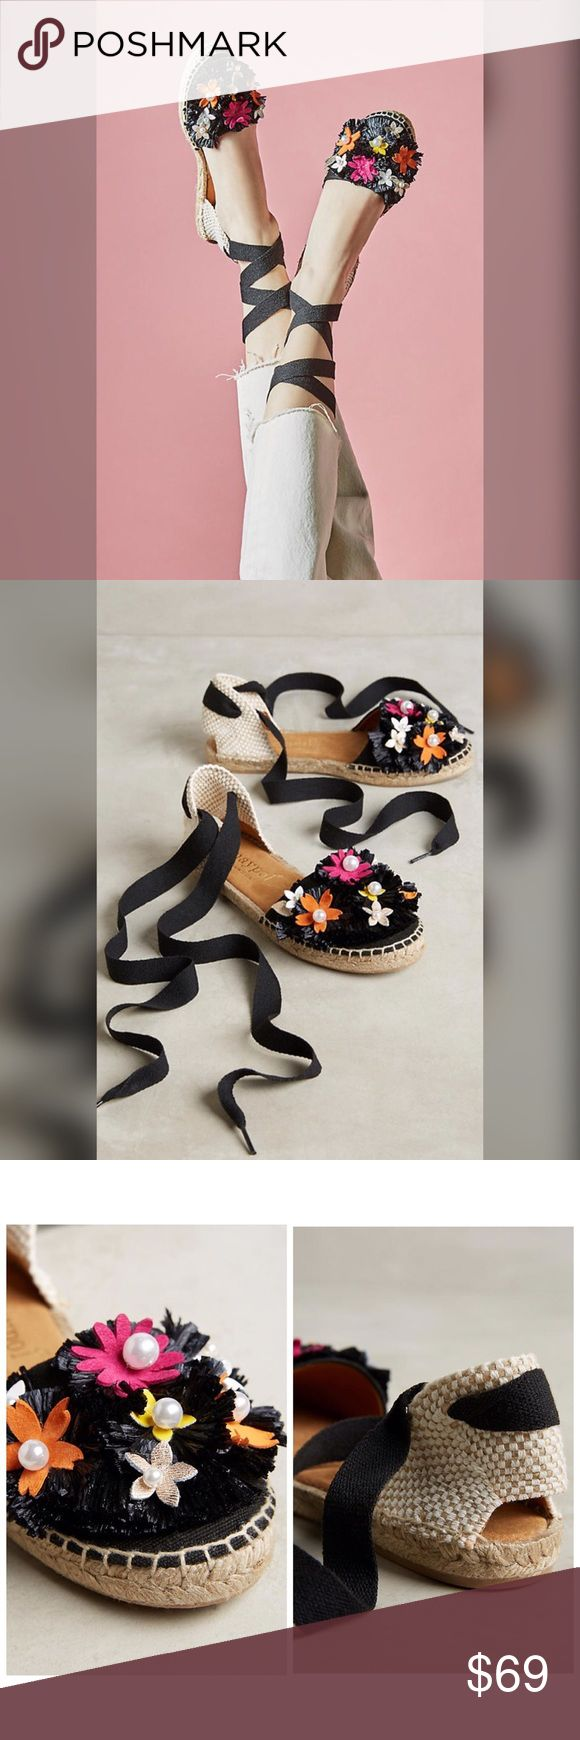 Anthropologie Maypol Solfi Floral Espadrilles Details:  •Size: 39 Euro (US 9) •Brand new in box •Retail: $98 •Raffia, plastic pearl upper •Leather insole •Rubber sole •Tie closure •Spain •Style No. 41449711 Anthropologie Shoes Espadrilles